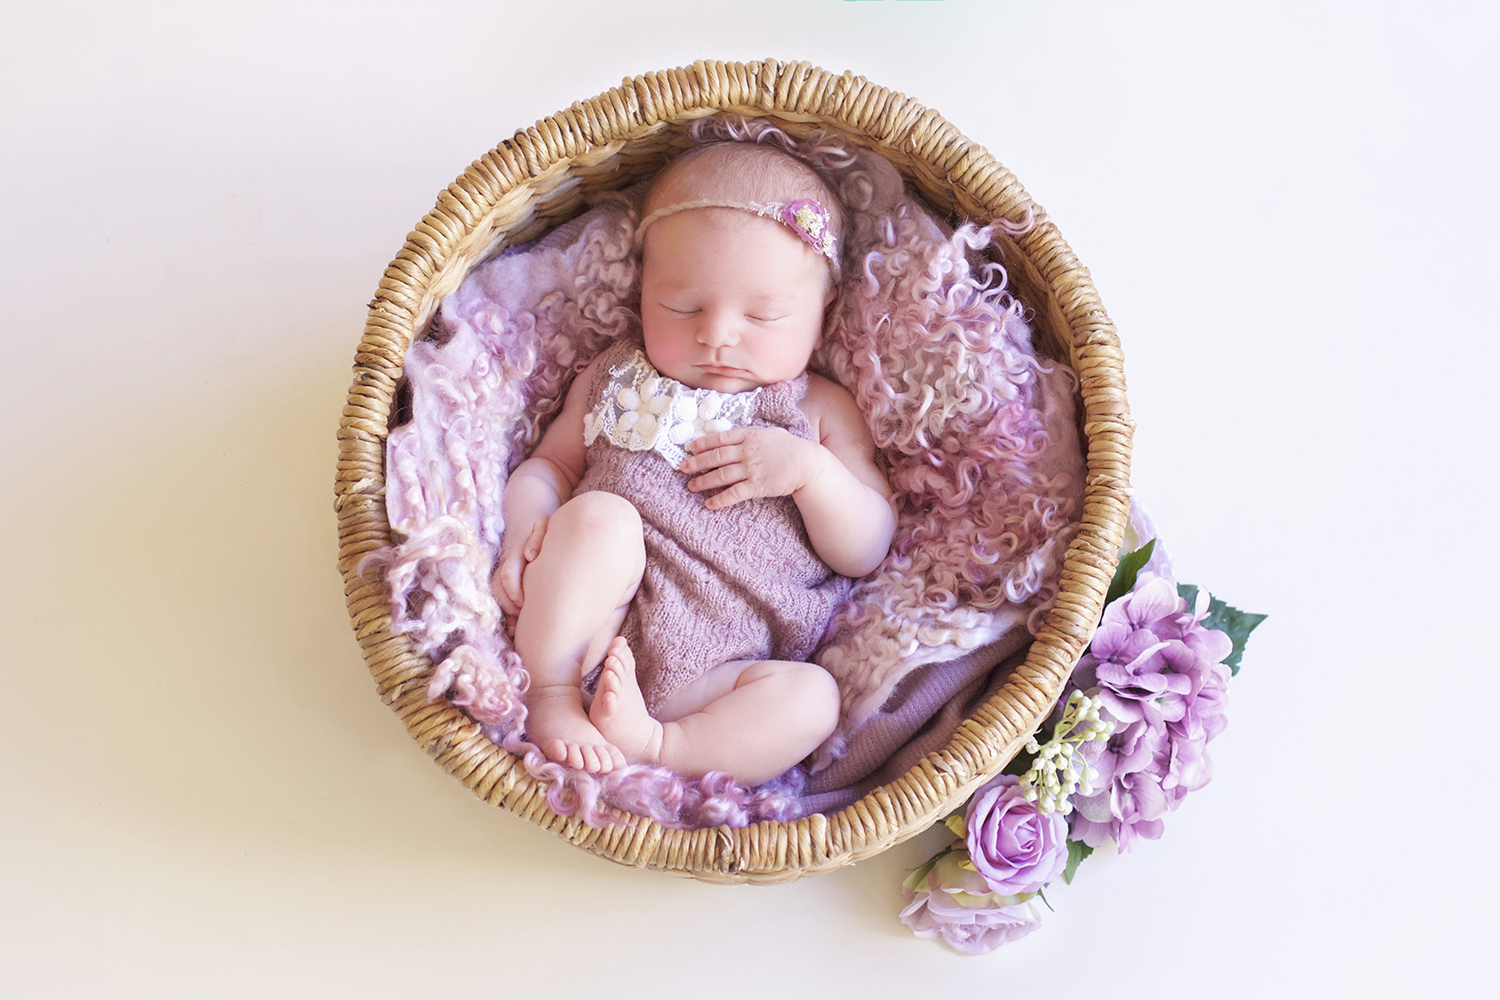 Newborn baby girl wearing pink romper sleeping in round cane basket with pink curly felt with pink flowers